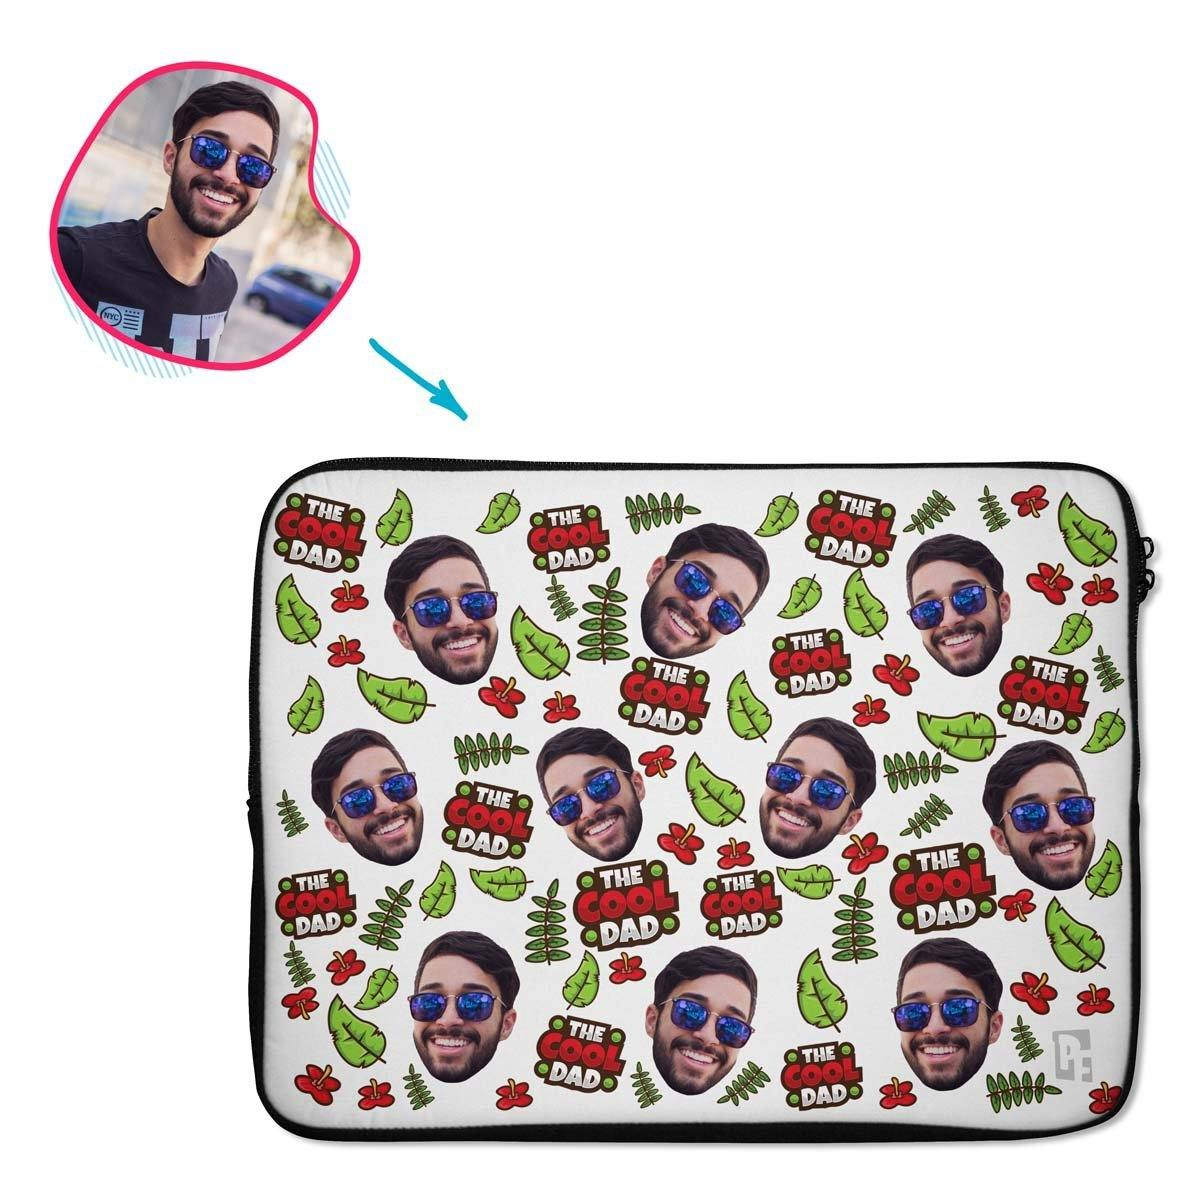 white The Cool Dad laptop sleeve personalized with photo of face printed on them